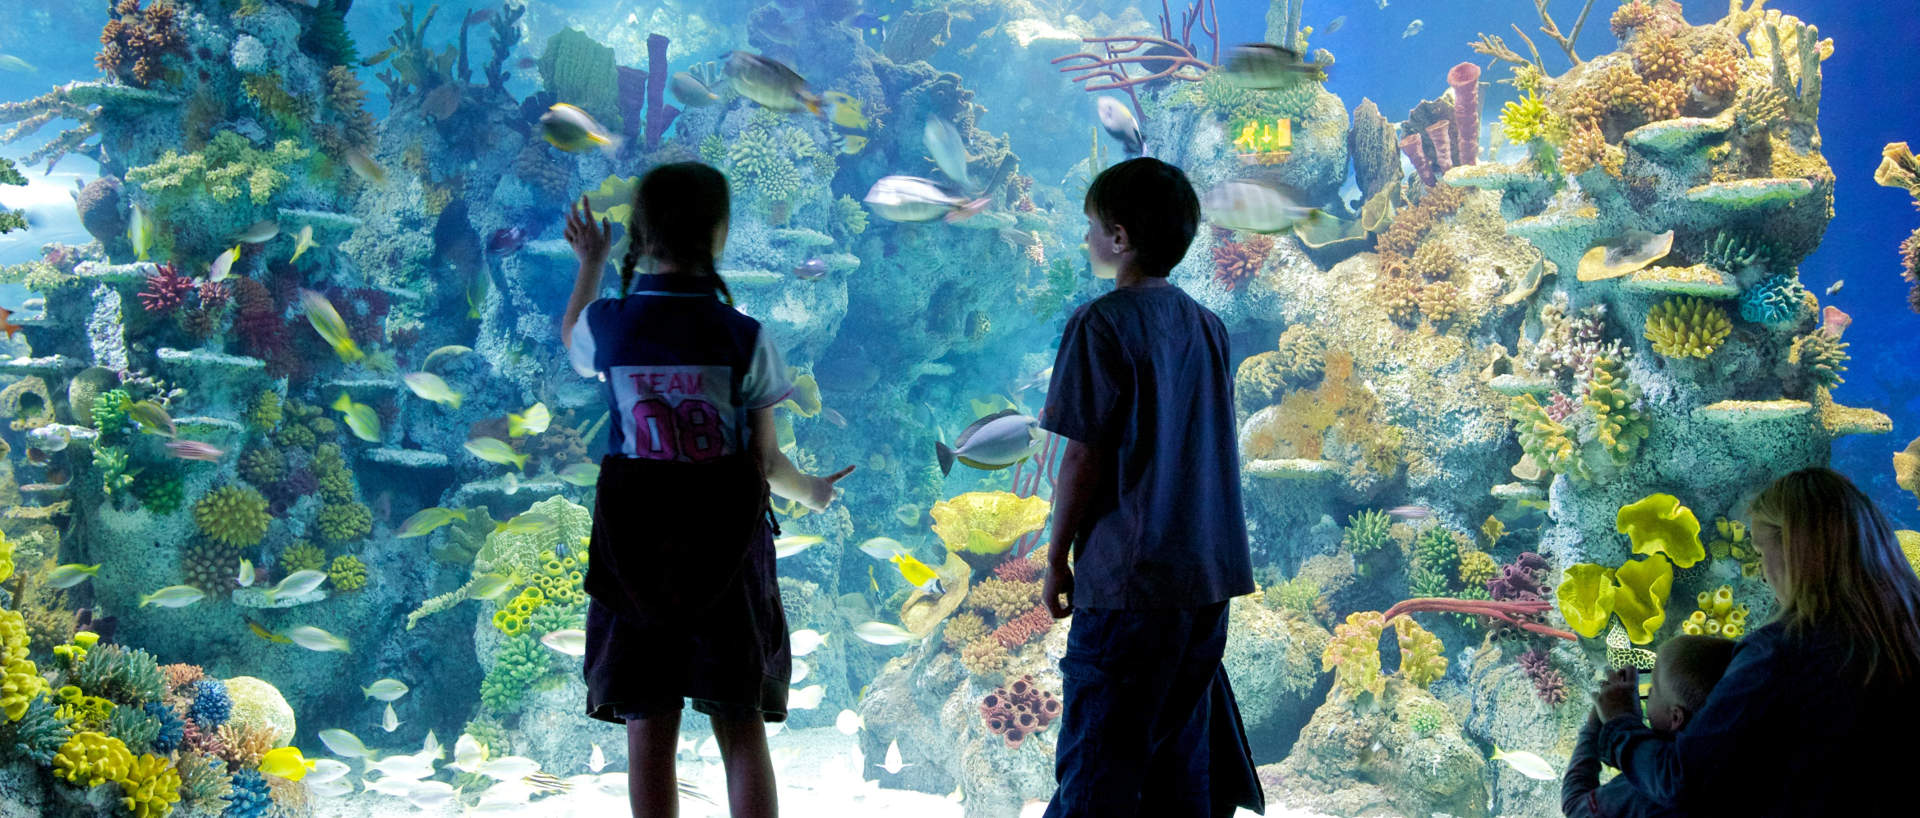 Family visiting the Aquarium near PREMIER SUITES PLUS Bristol Cabot Circus